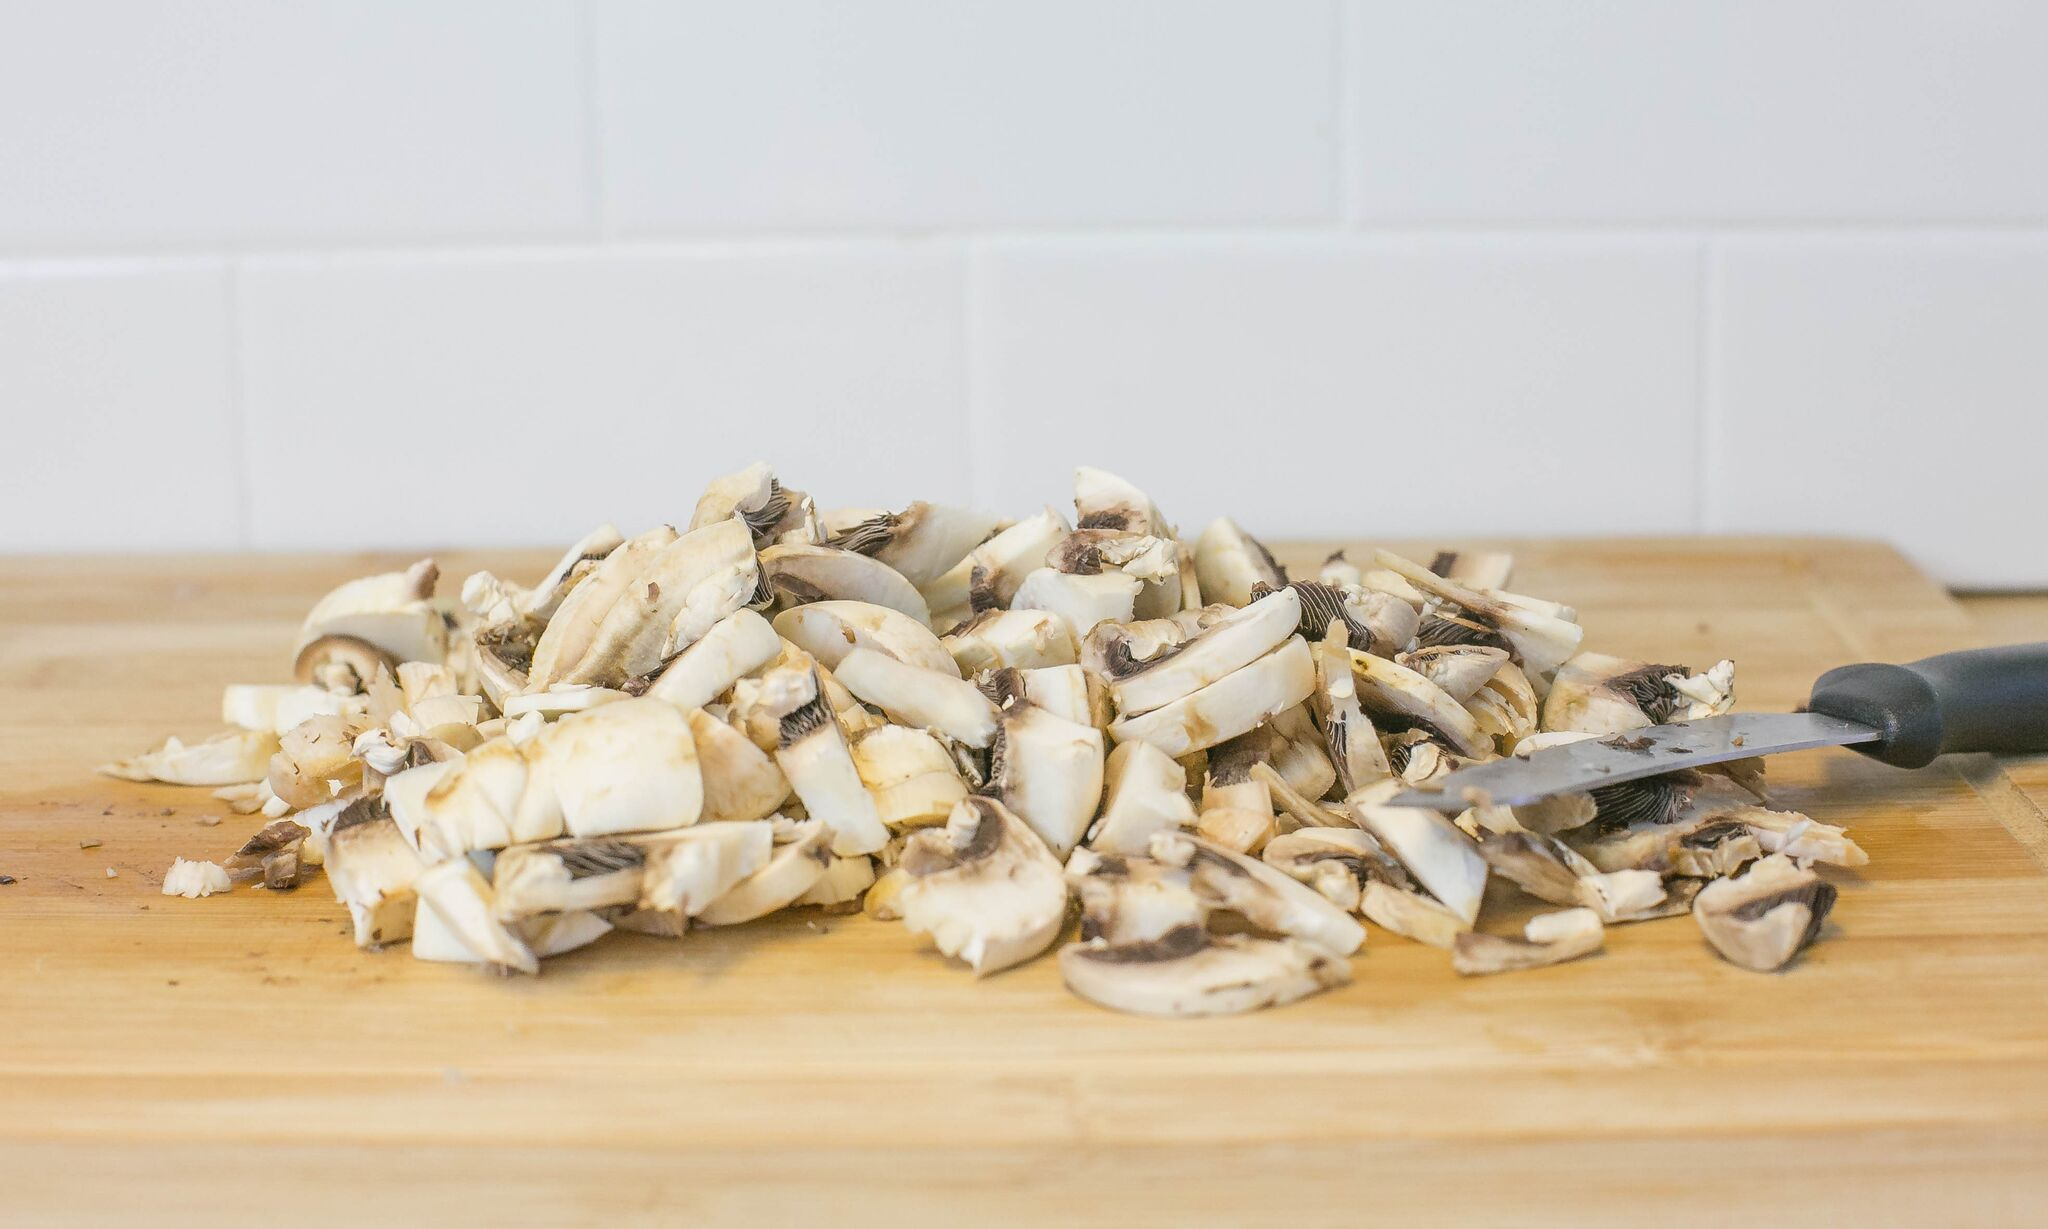 Clean and chop mushrooms and set aside.